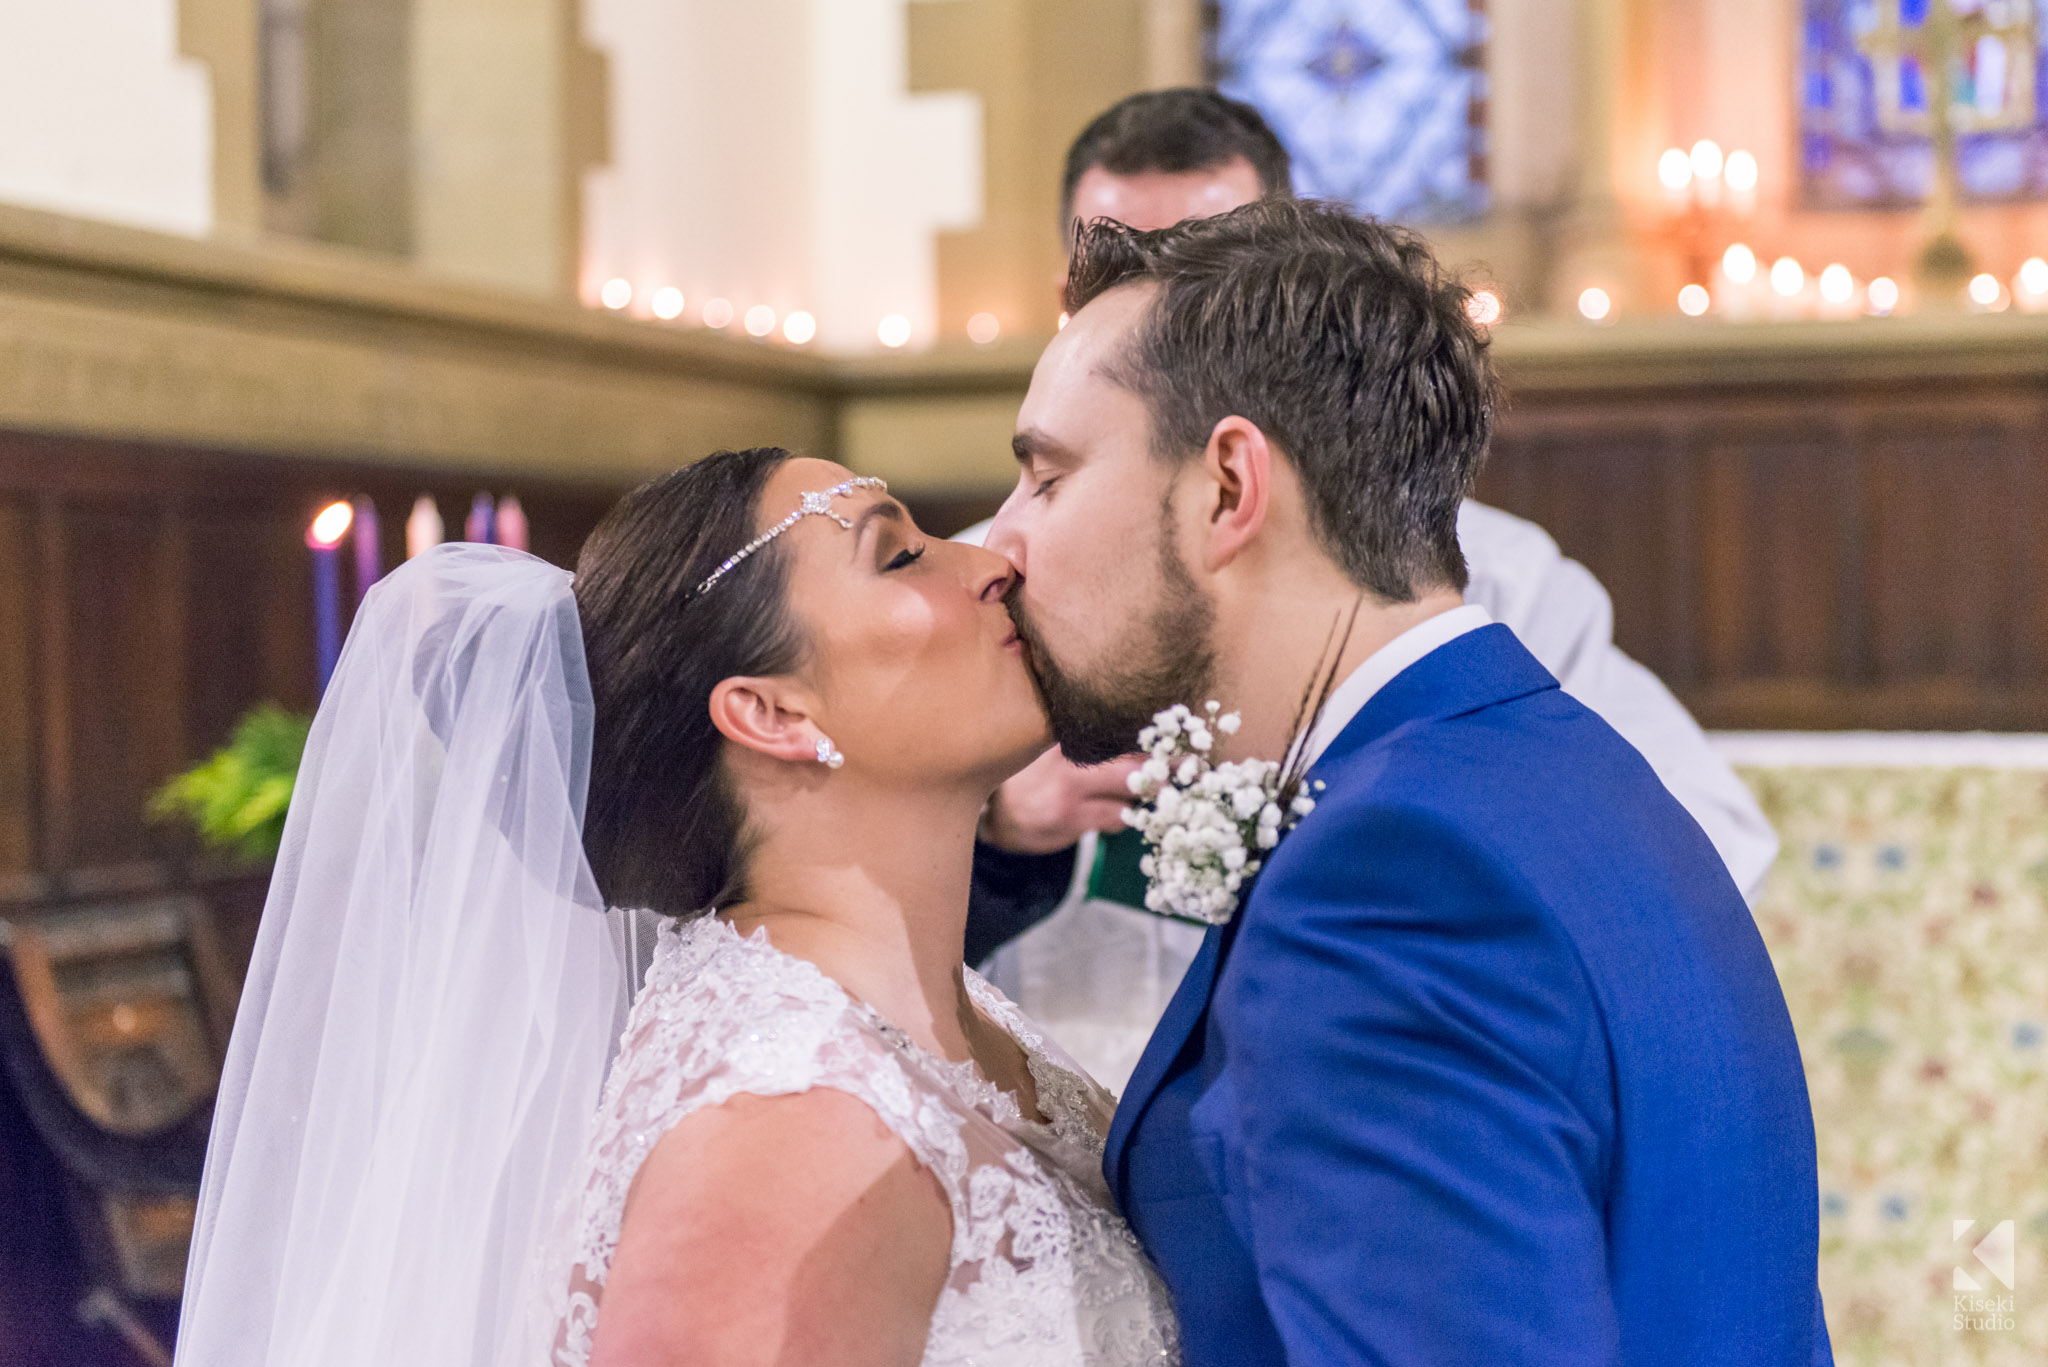 Bride and Groom kissing in the church